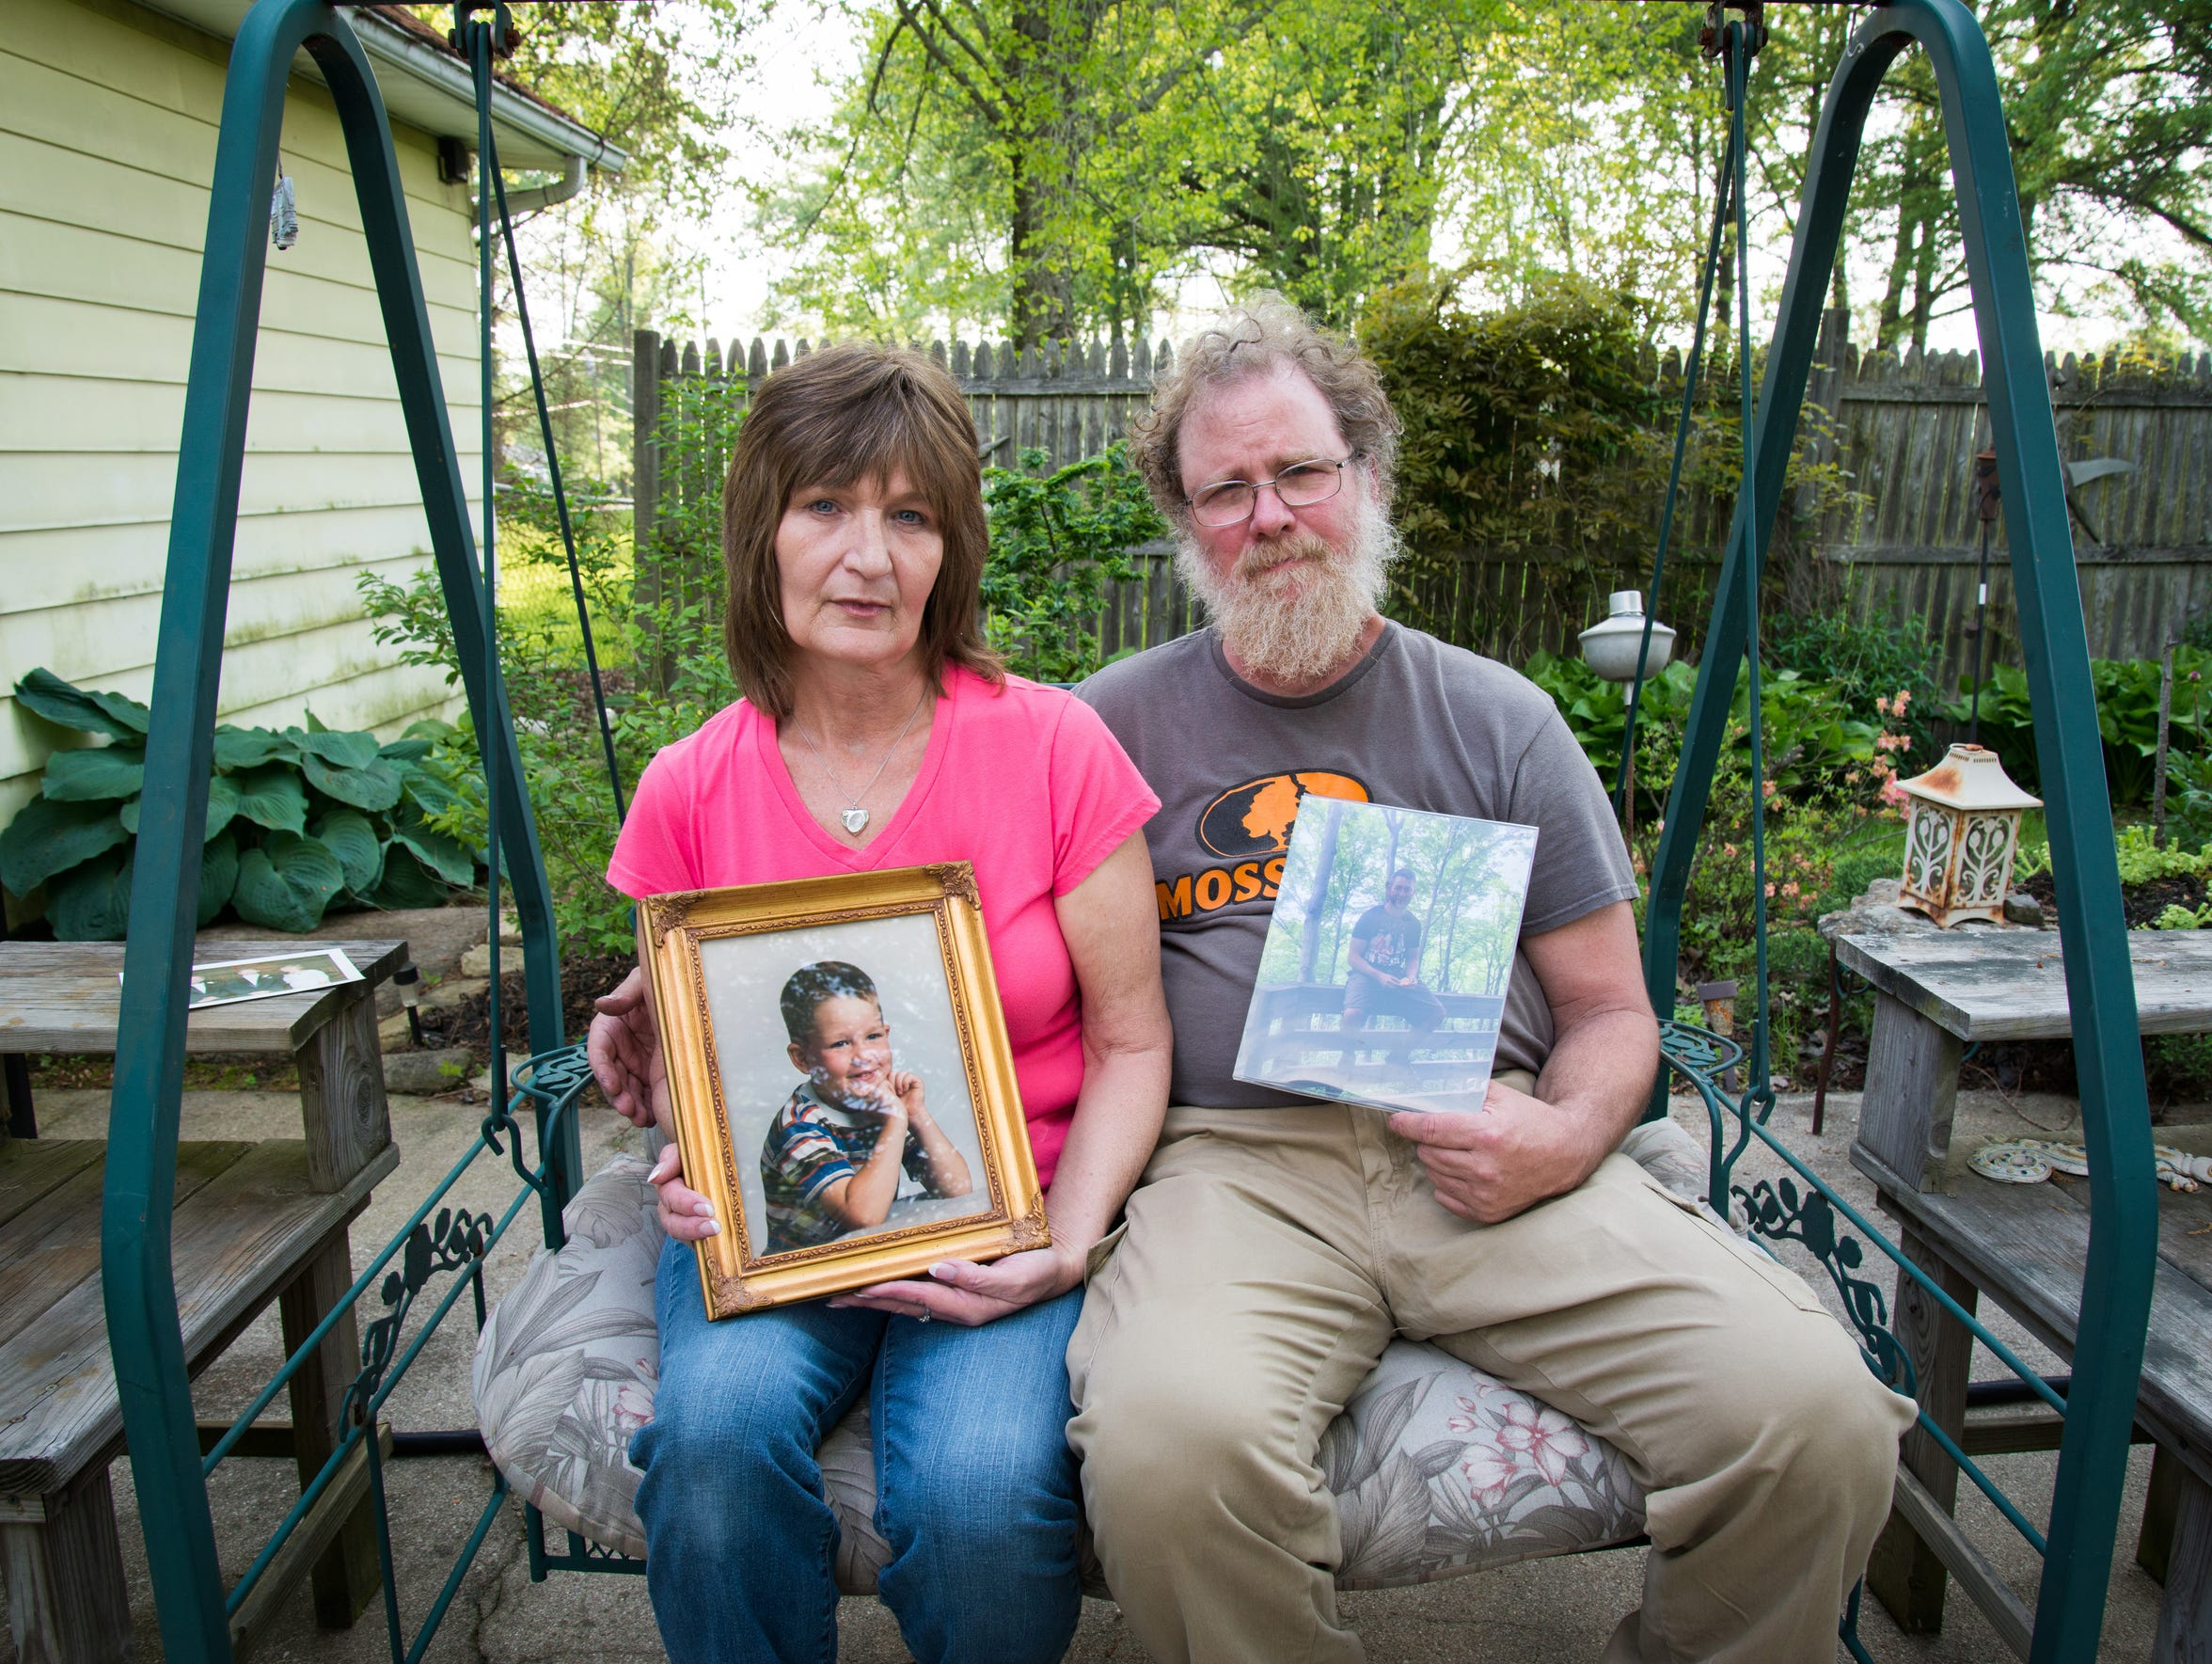 Jim and Kathleen Amiot hold up their favorite portraits